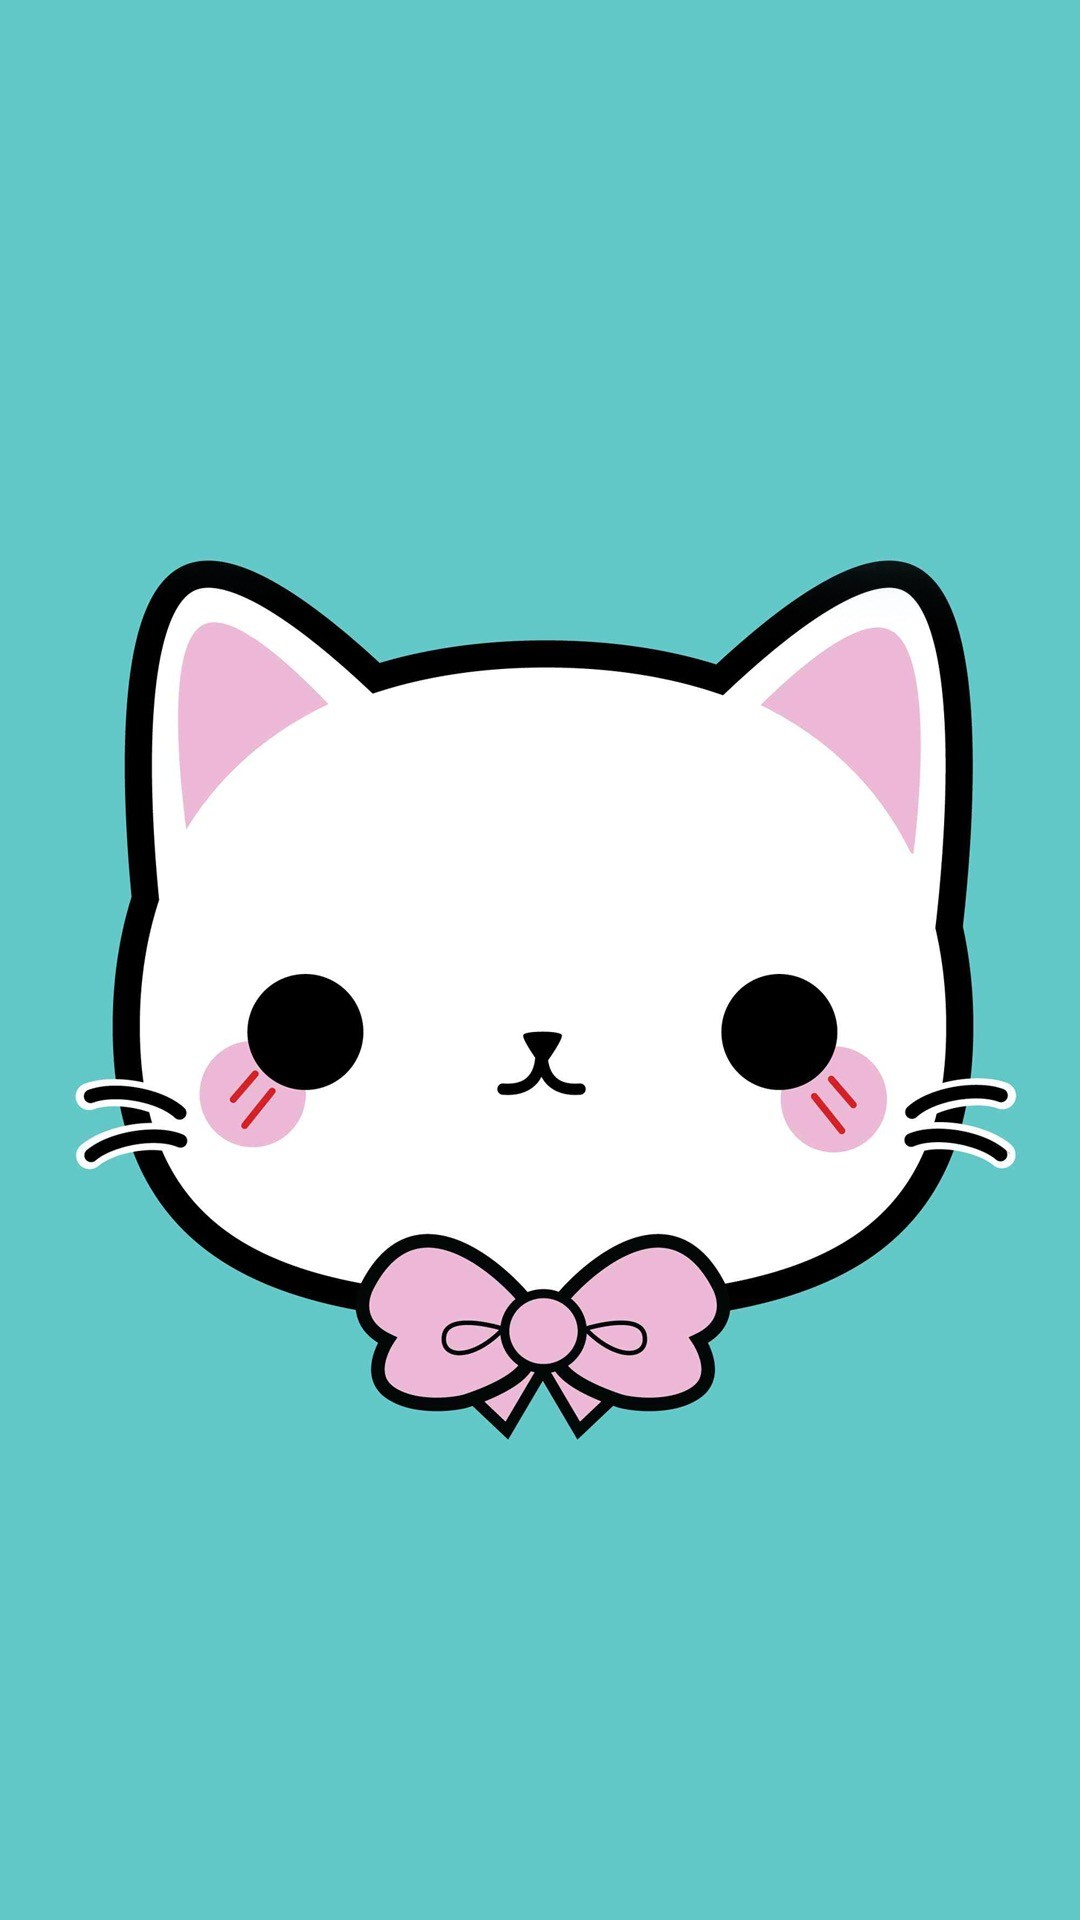 Bow Kitty and like OMG! get some yourself some pawtastic adorable cat  apparel!